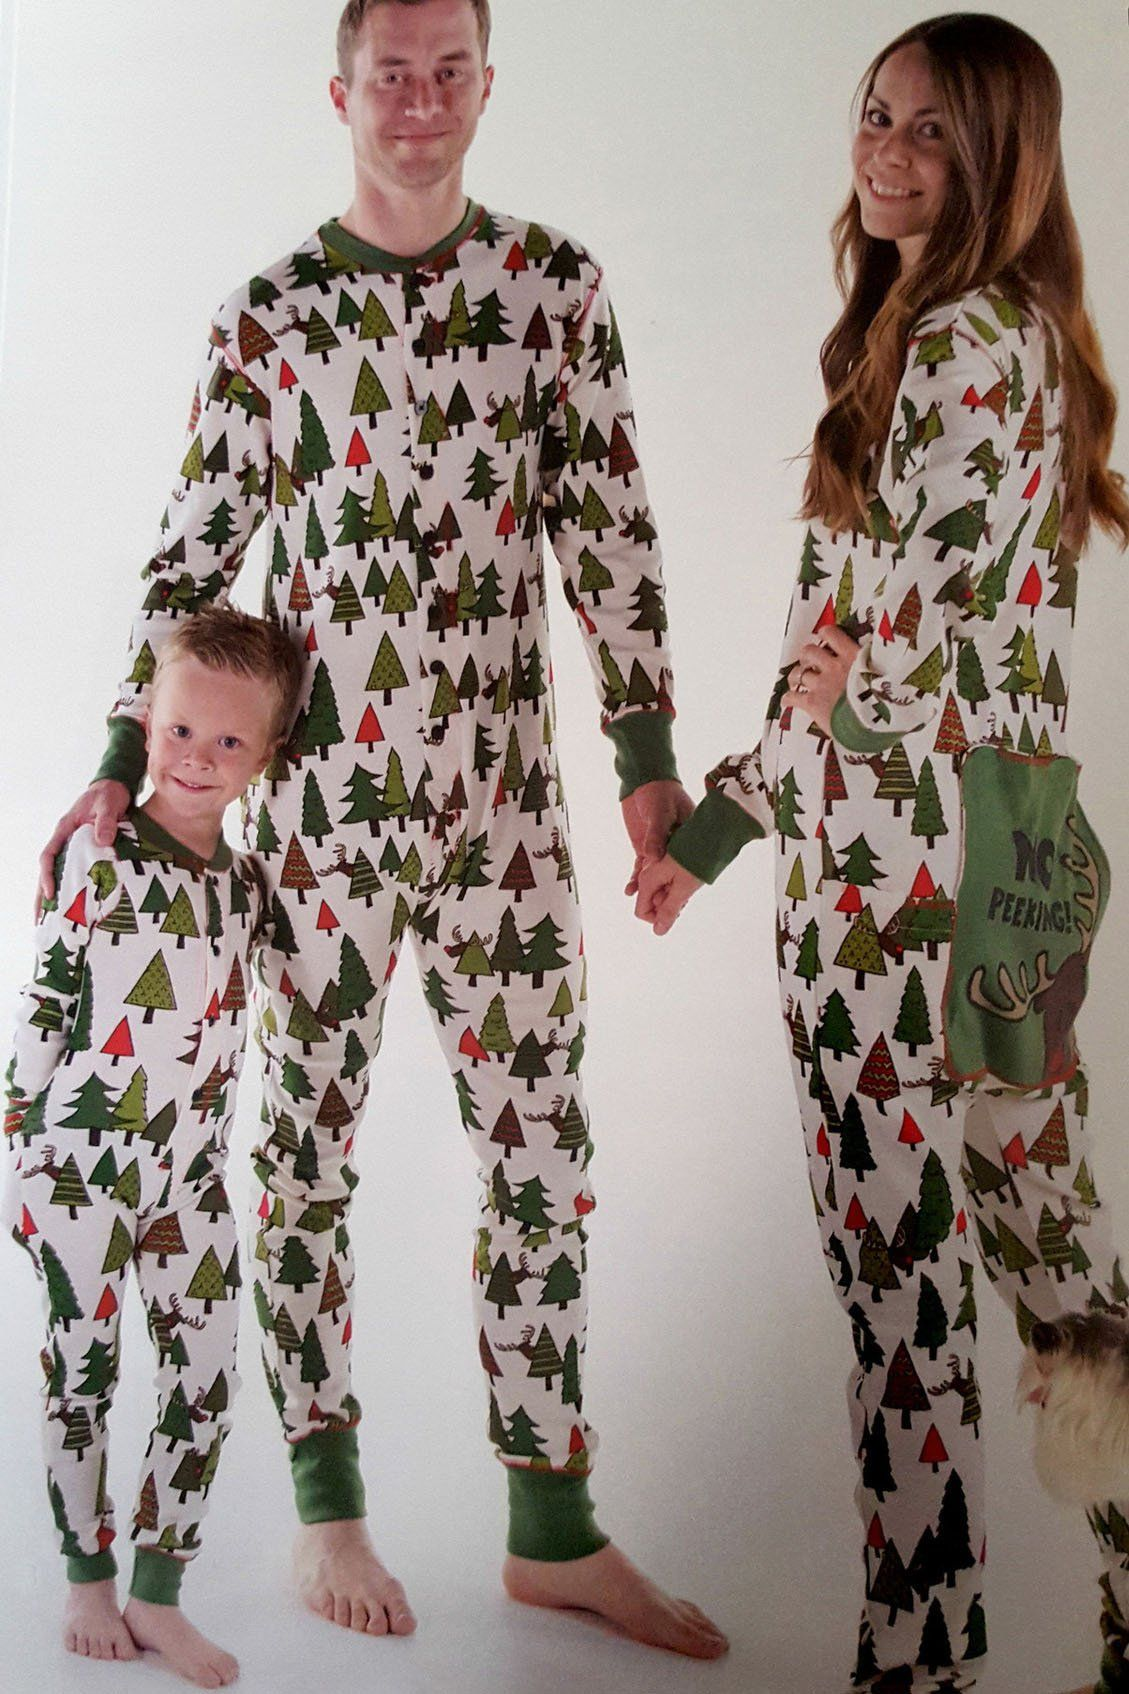 08105d484e1f Reindeer Christmas Trees Family Matching Pajamas Set For Xmas ...